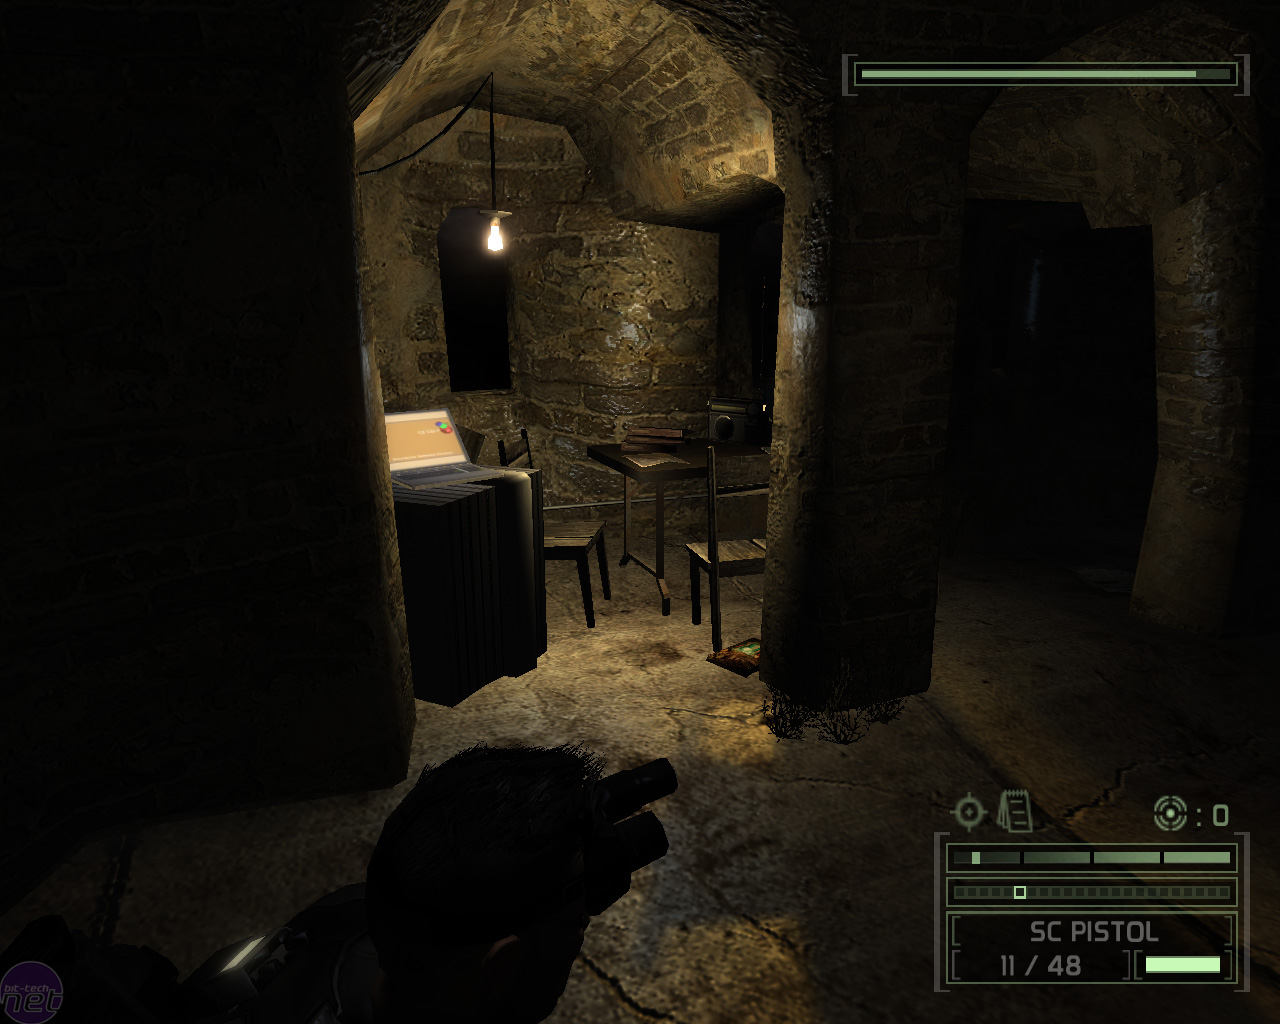 Splinter Cell Chaos Theory Screenshot - 02